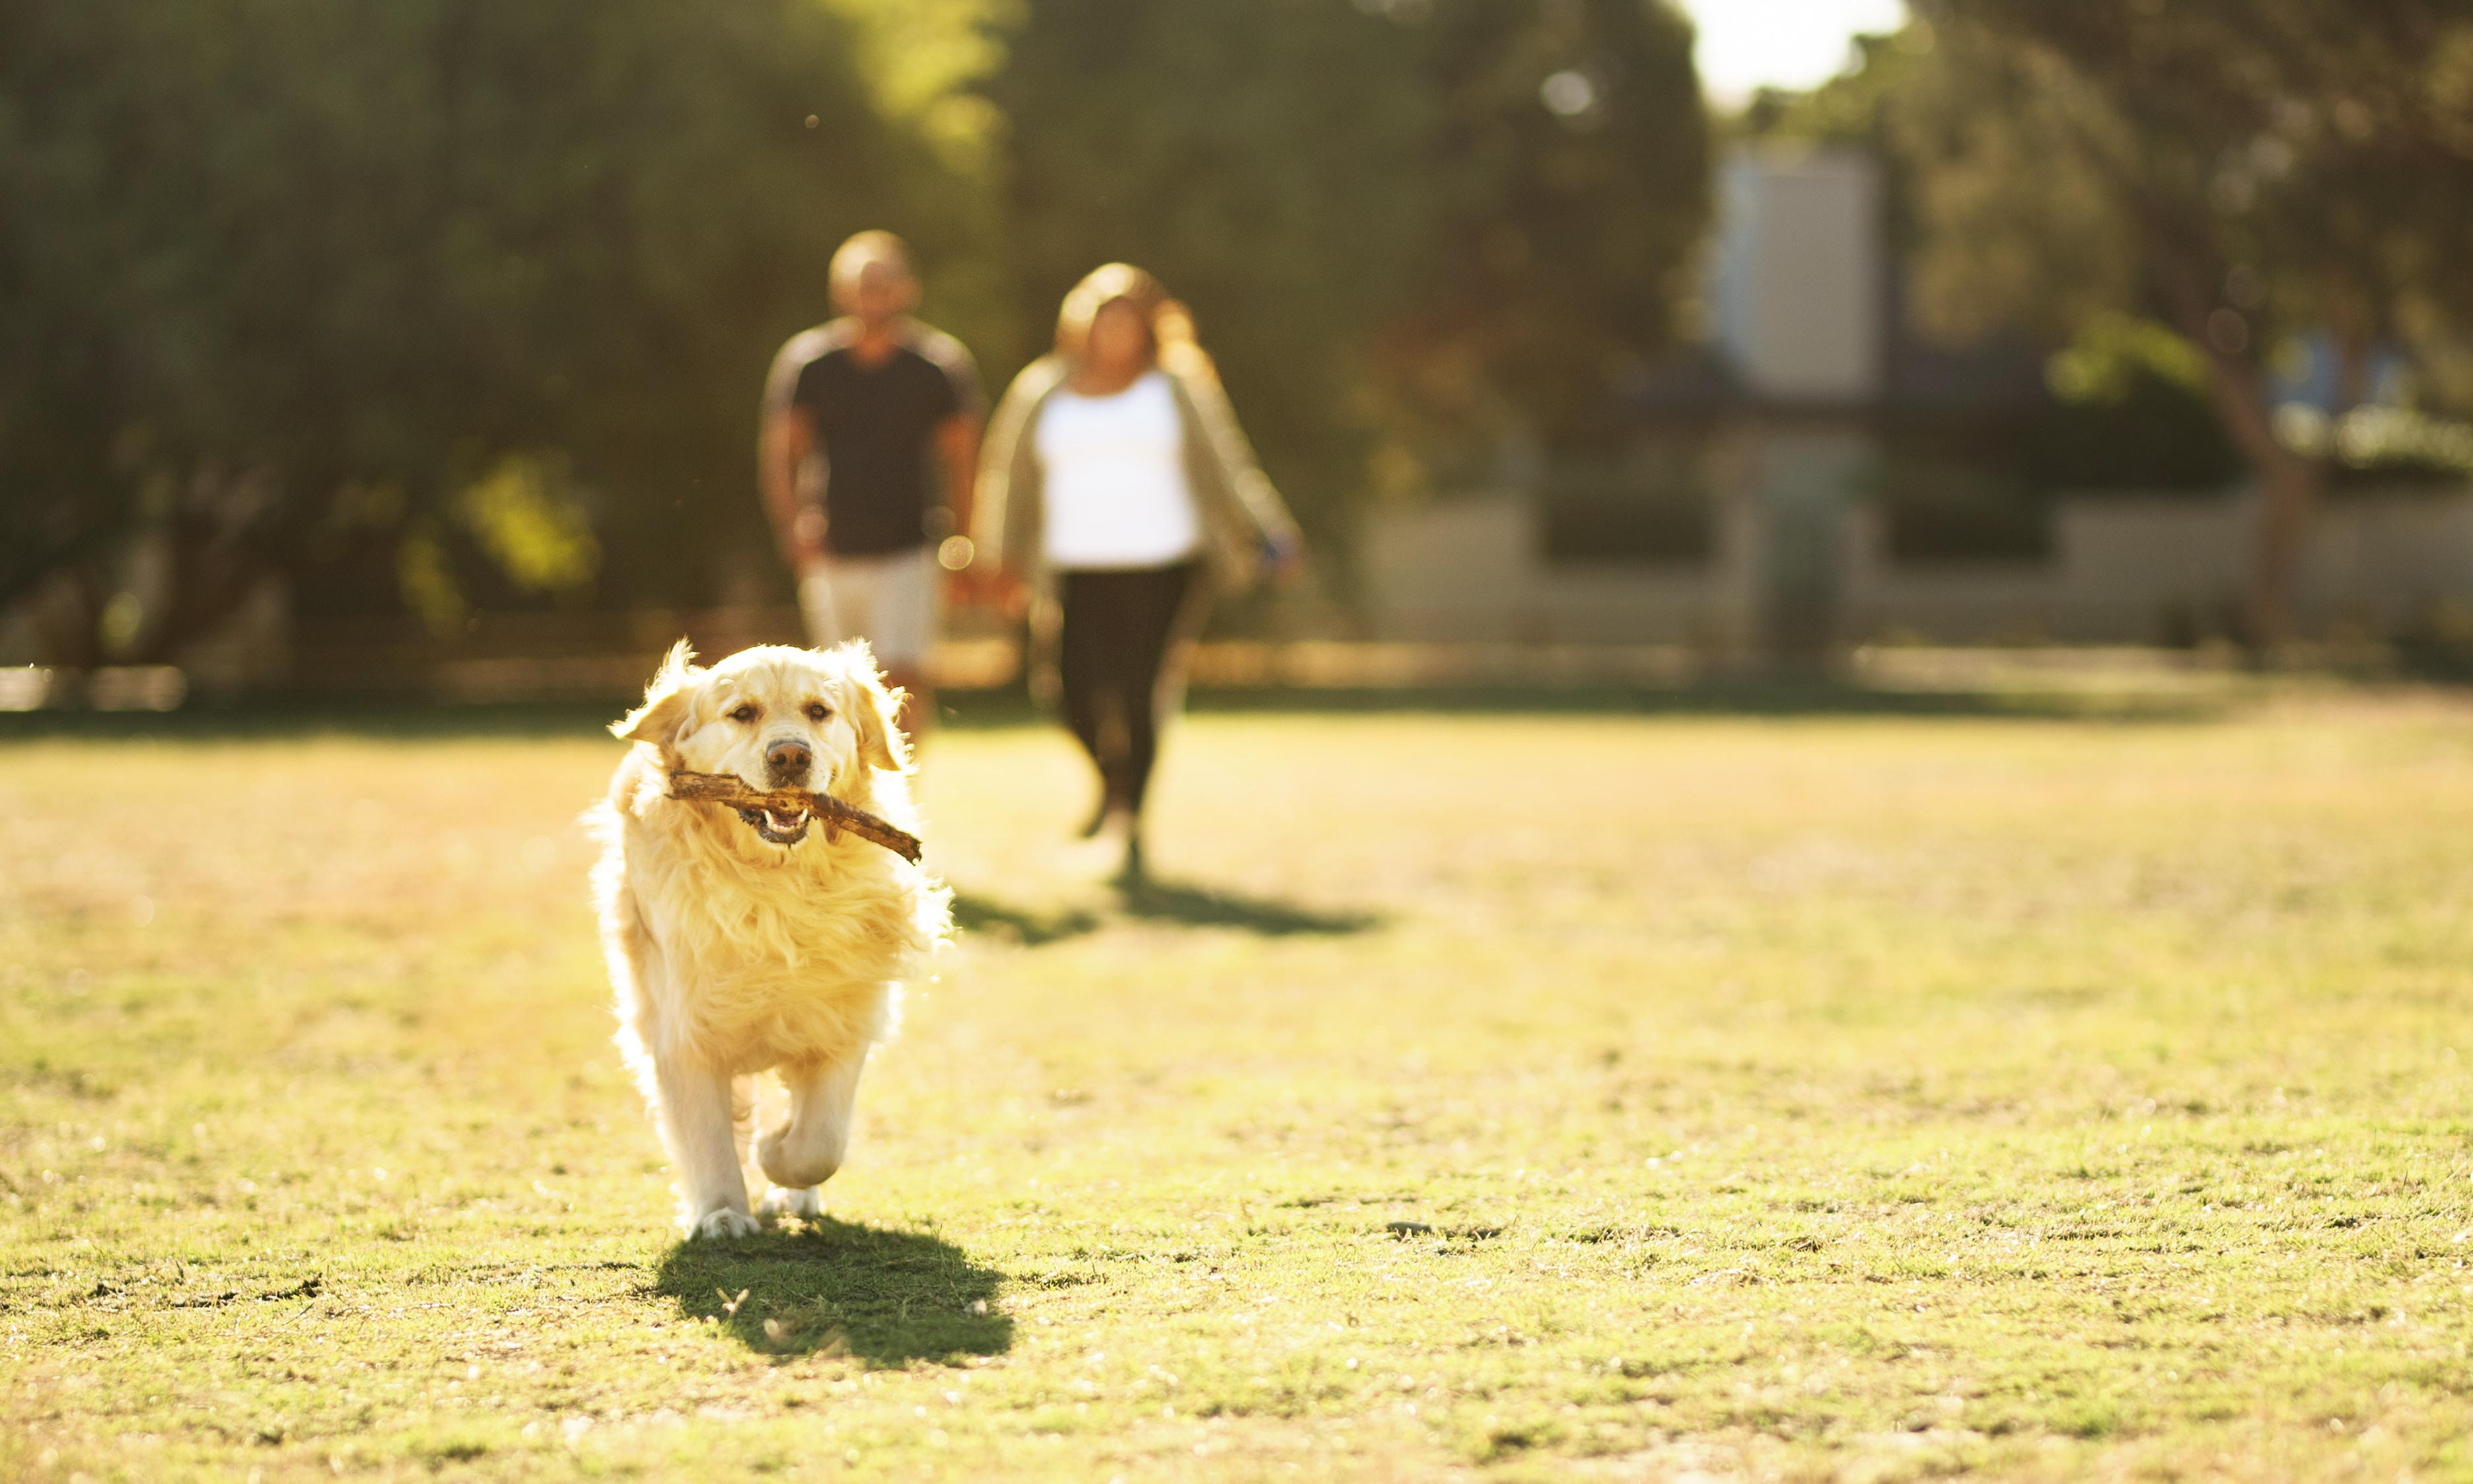 I love my dog. But why must walkies involve horrendous social interactions?